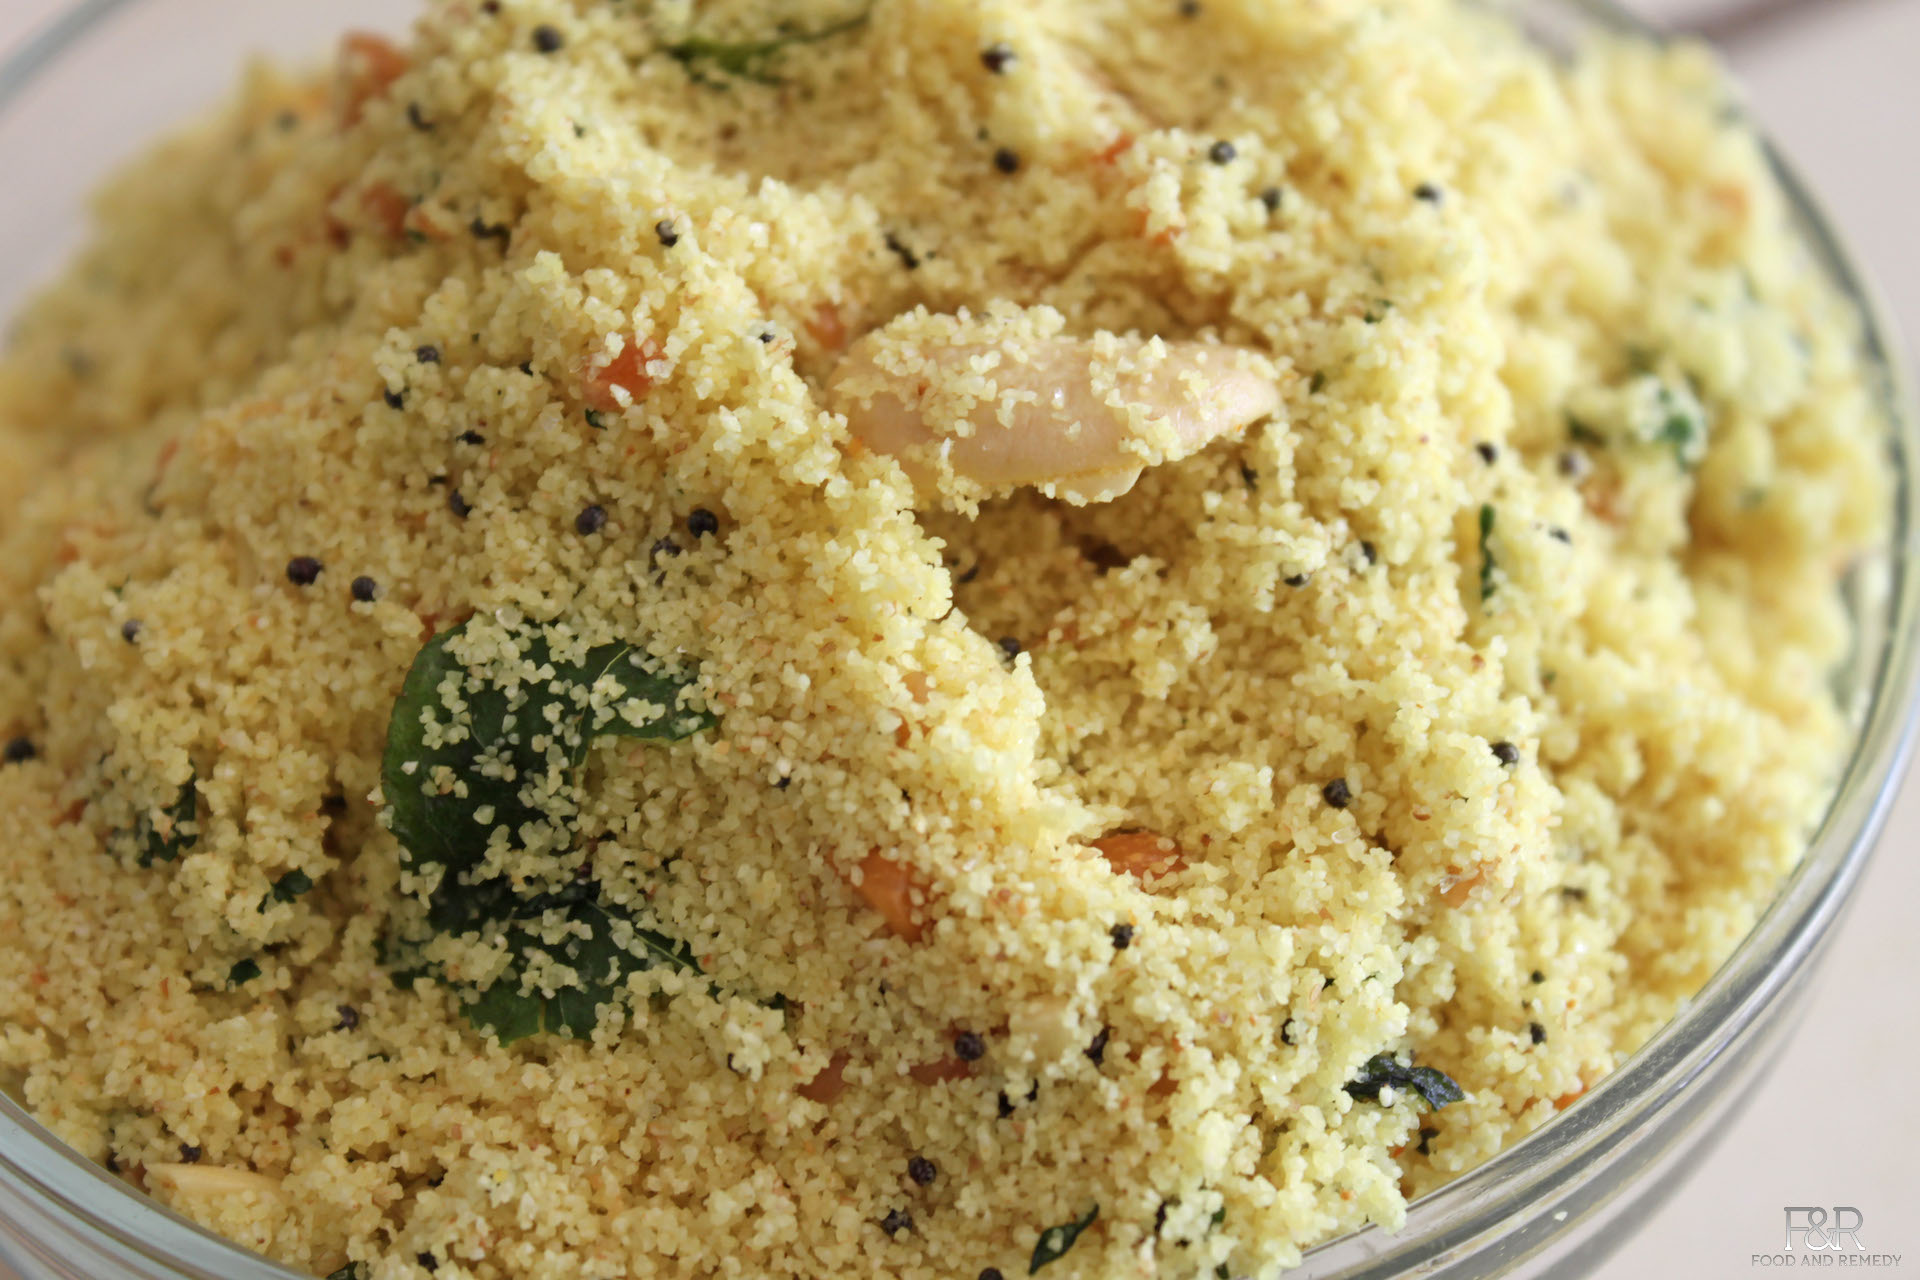 How To Make Instant Upma Mix At Home